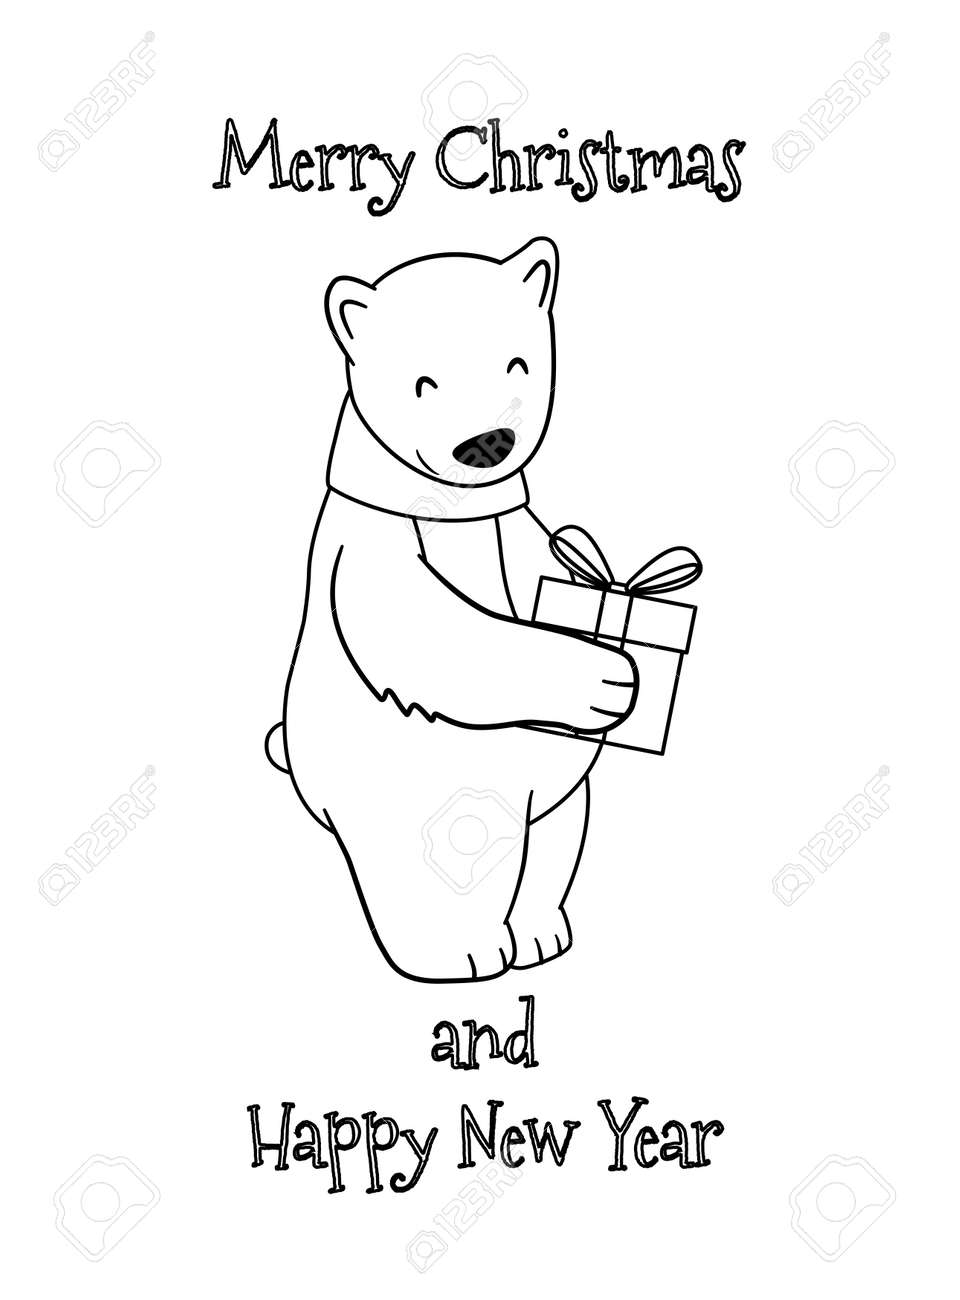 Cute Cartoon Christmas Polar Bear With Gift Coloring Page For Royalty Free Cliparts Vectors And Stock Illustration Image 65420188